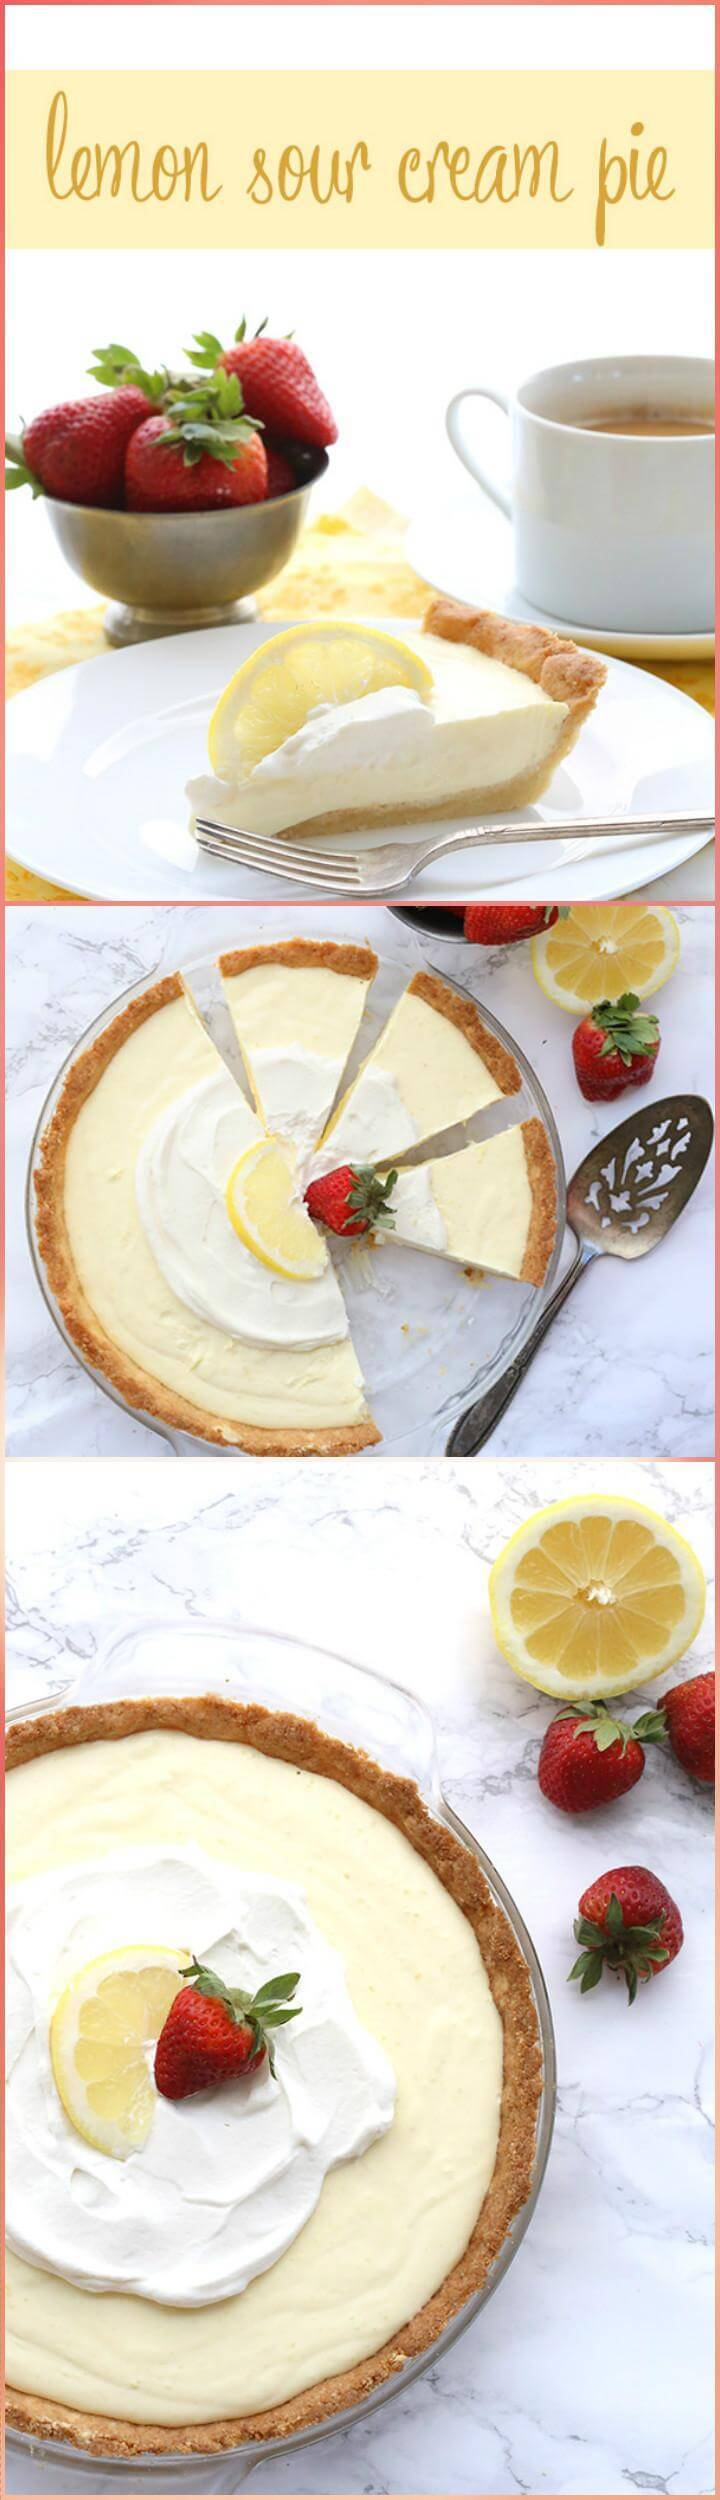 easy lemon sour cream pie